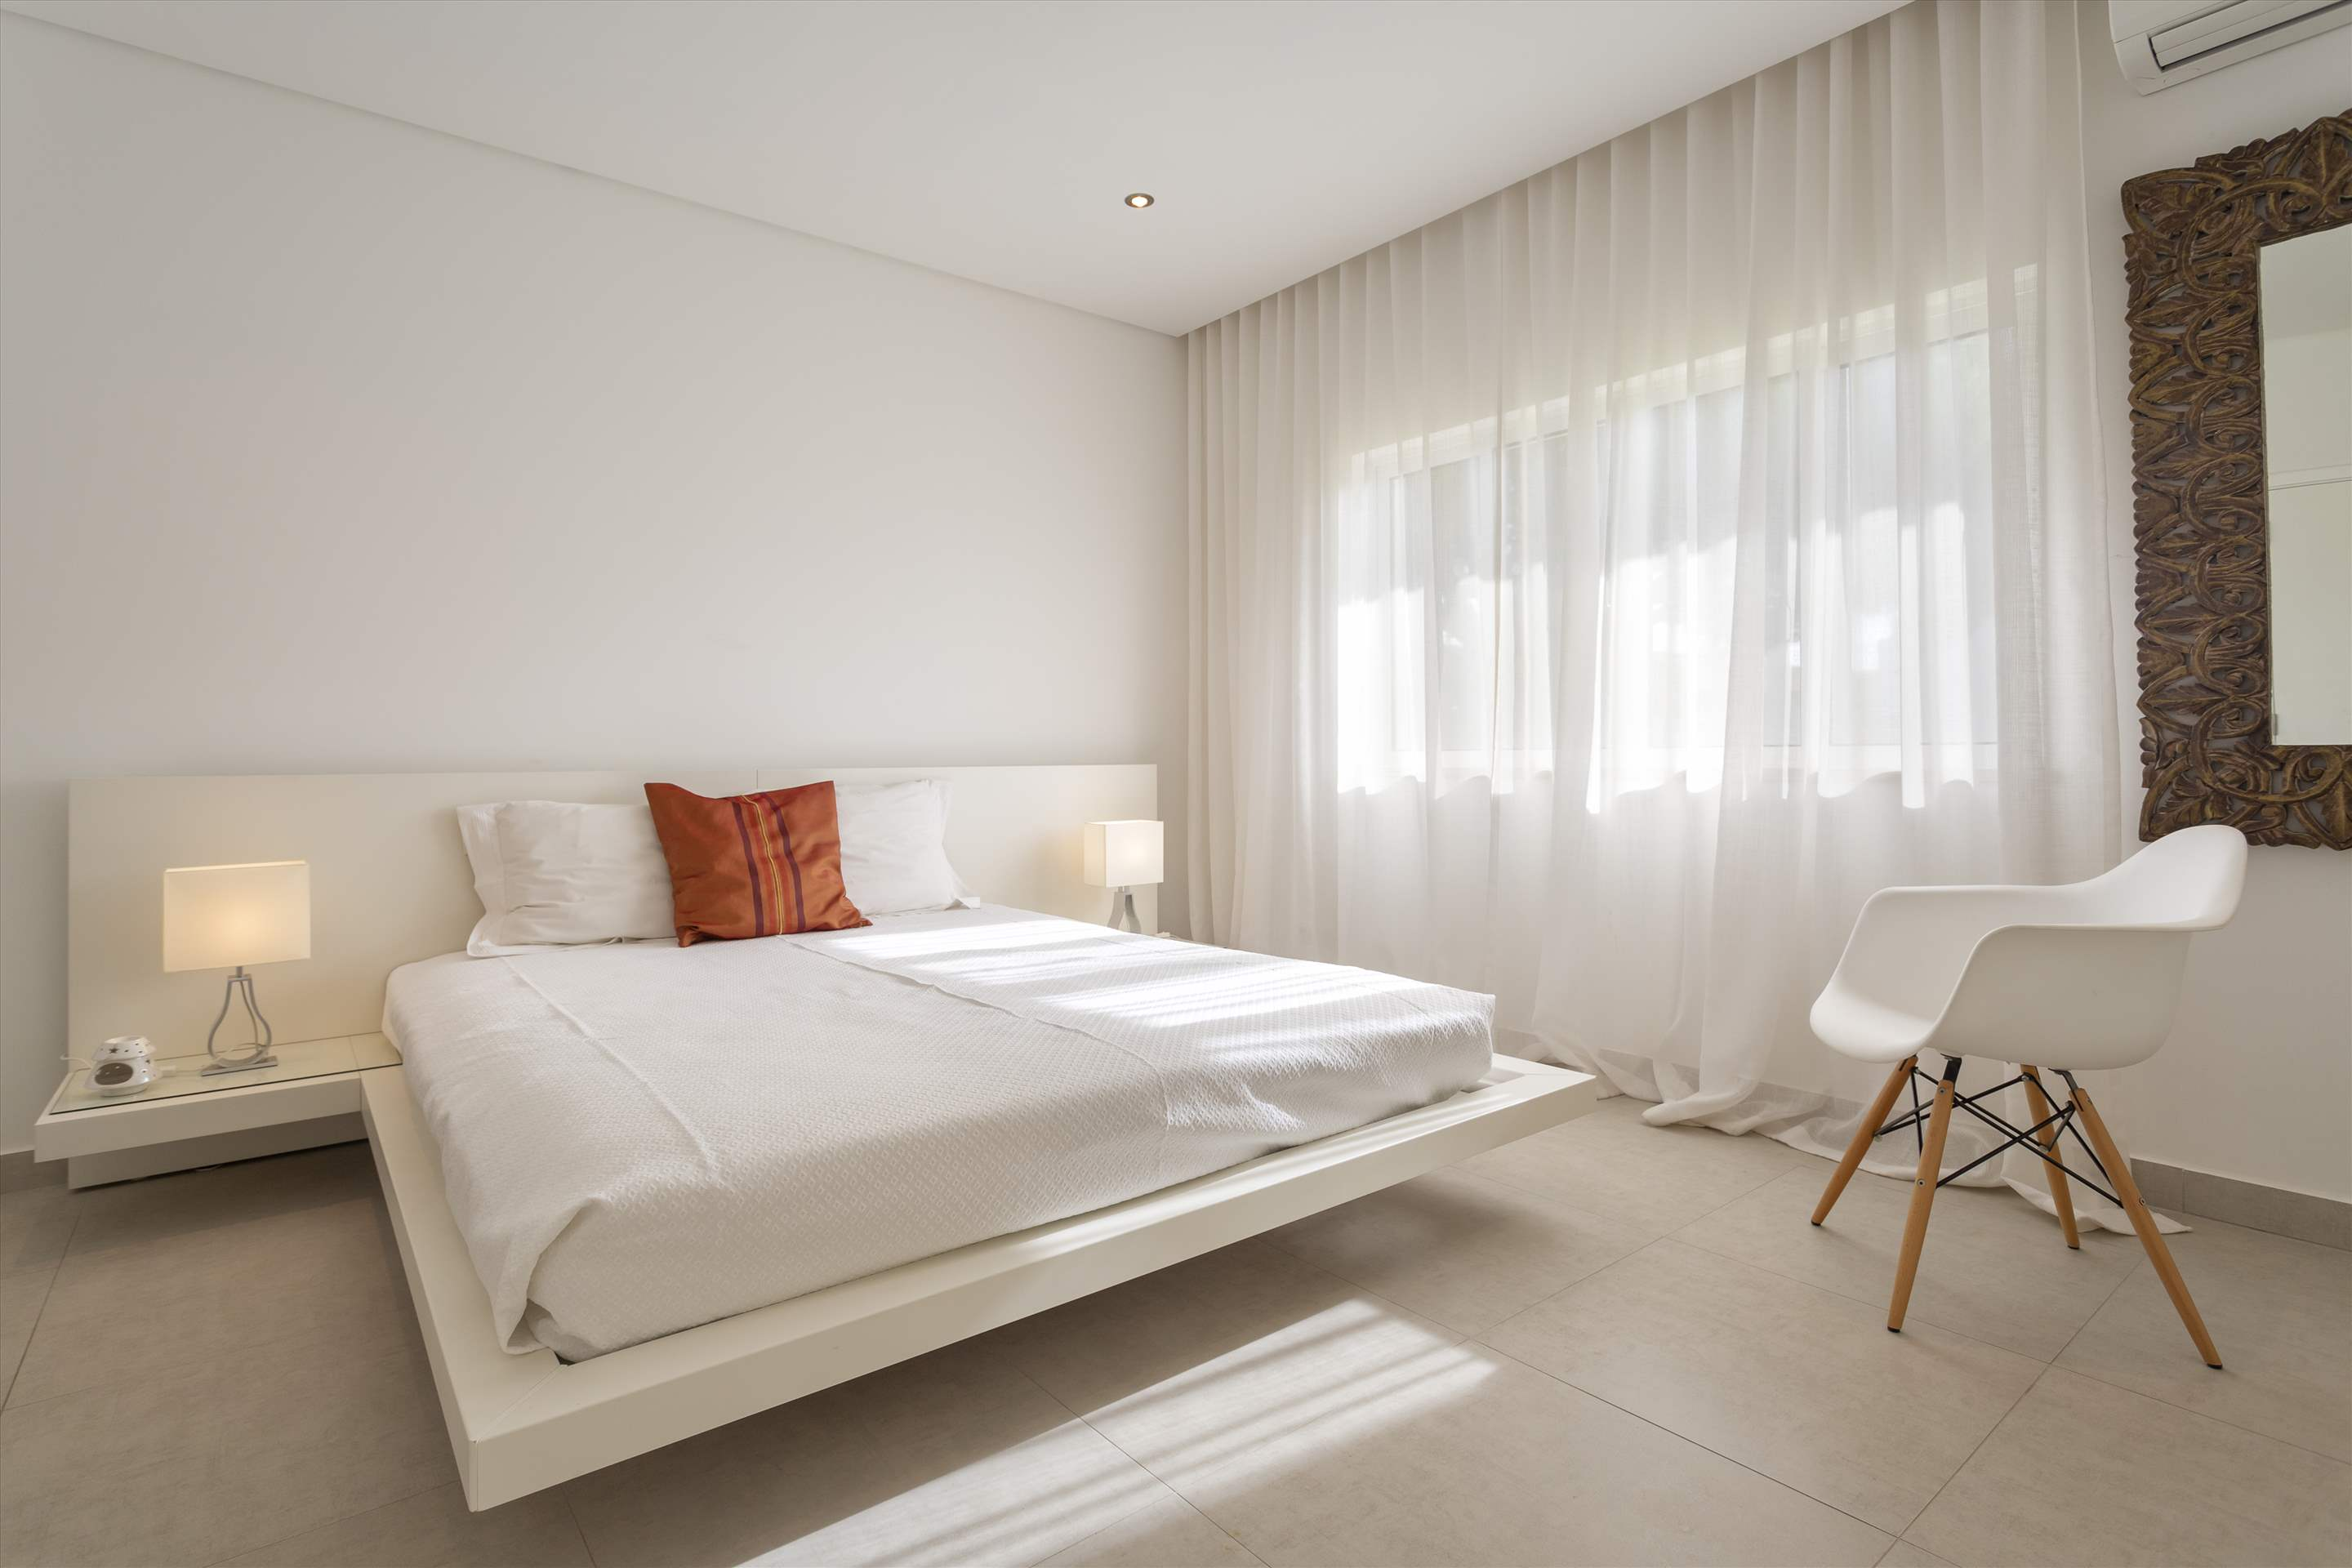 Apartment Academia, 3 bedroom apartment in Vale do Lobo, Algarve Photo #9